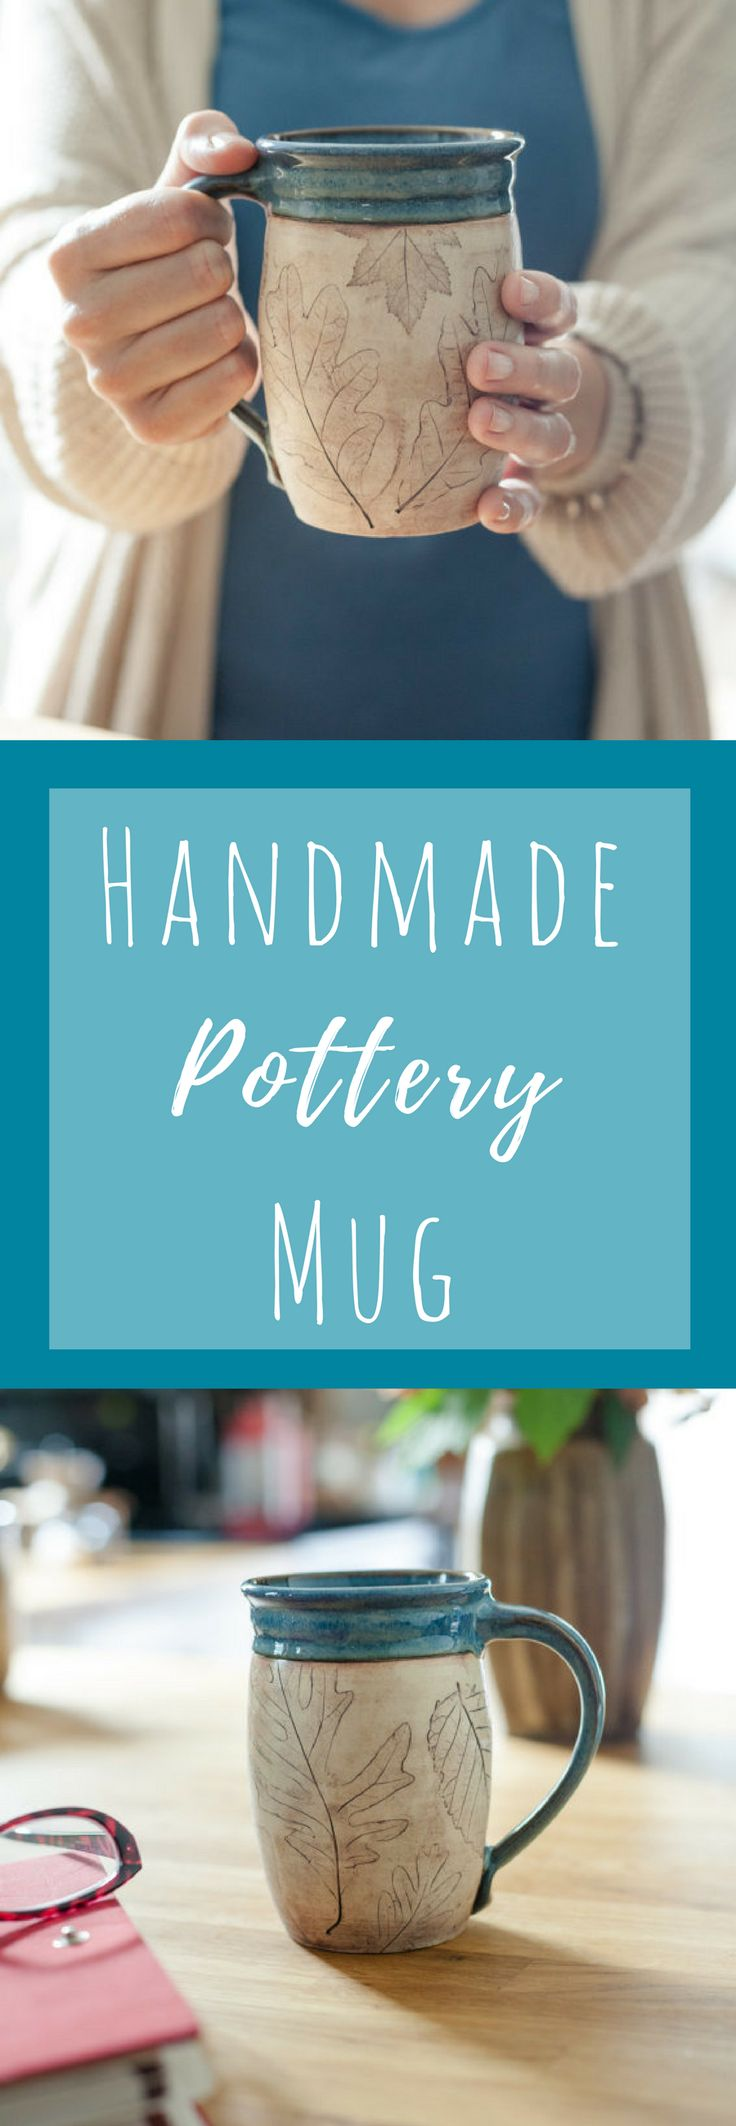 I love collecting coffee mugs and this one is just beautifully made! knowing that it is handmade makes it even more unique and i just love the pottery style! #coffeemug #pottery #giftidea #ad